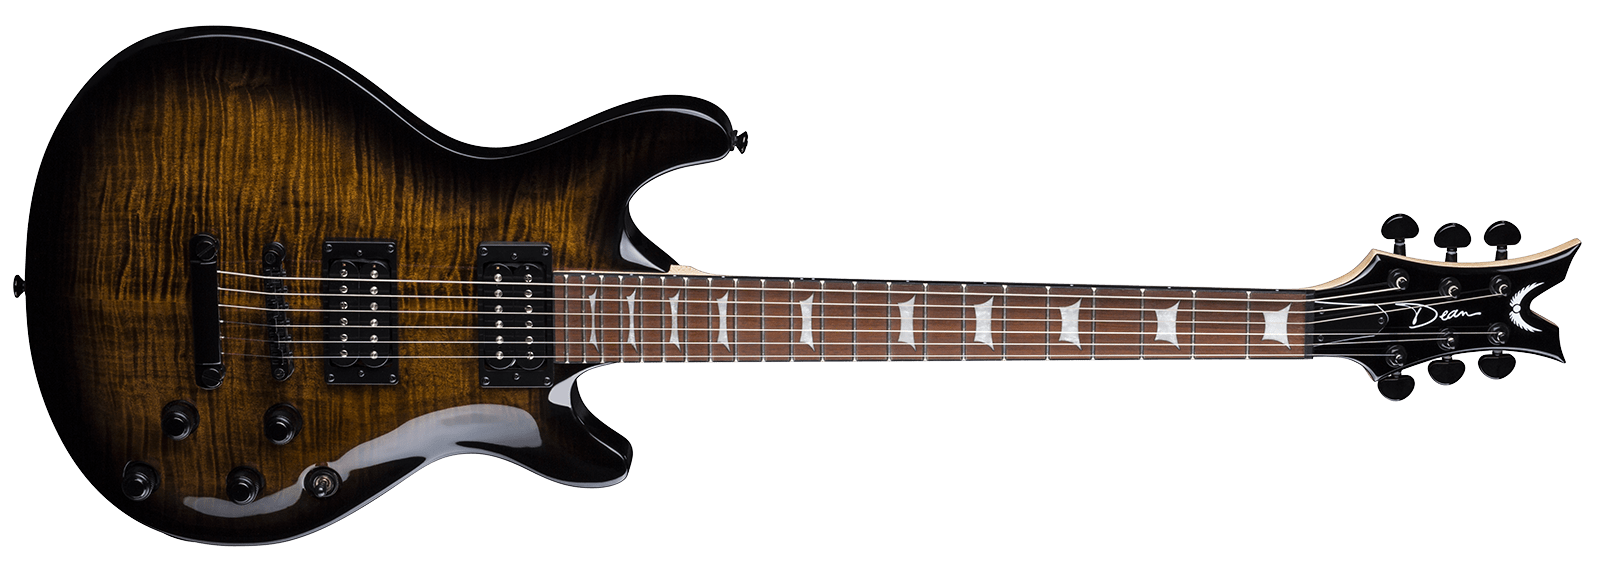 Icon X Flame Top - Charcoal Burst